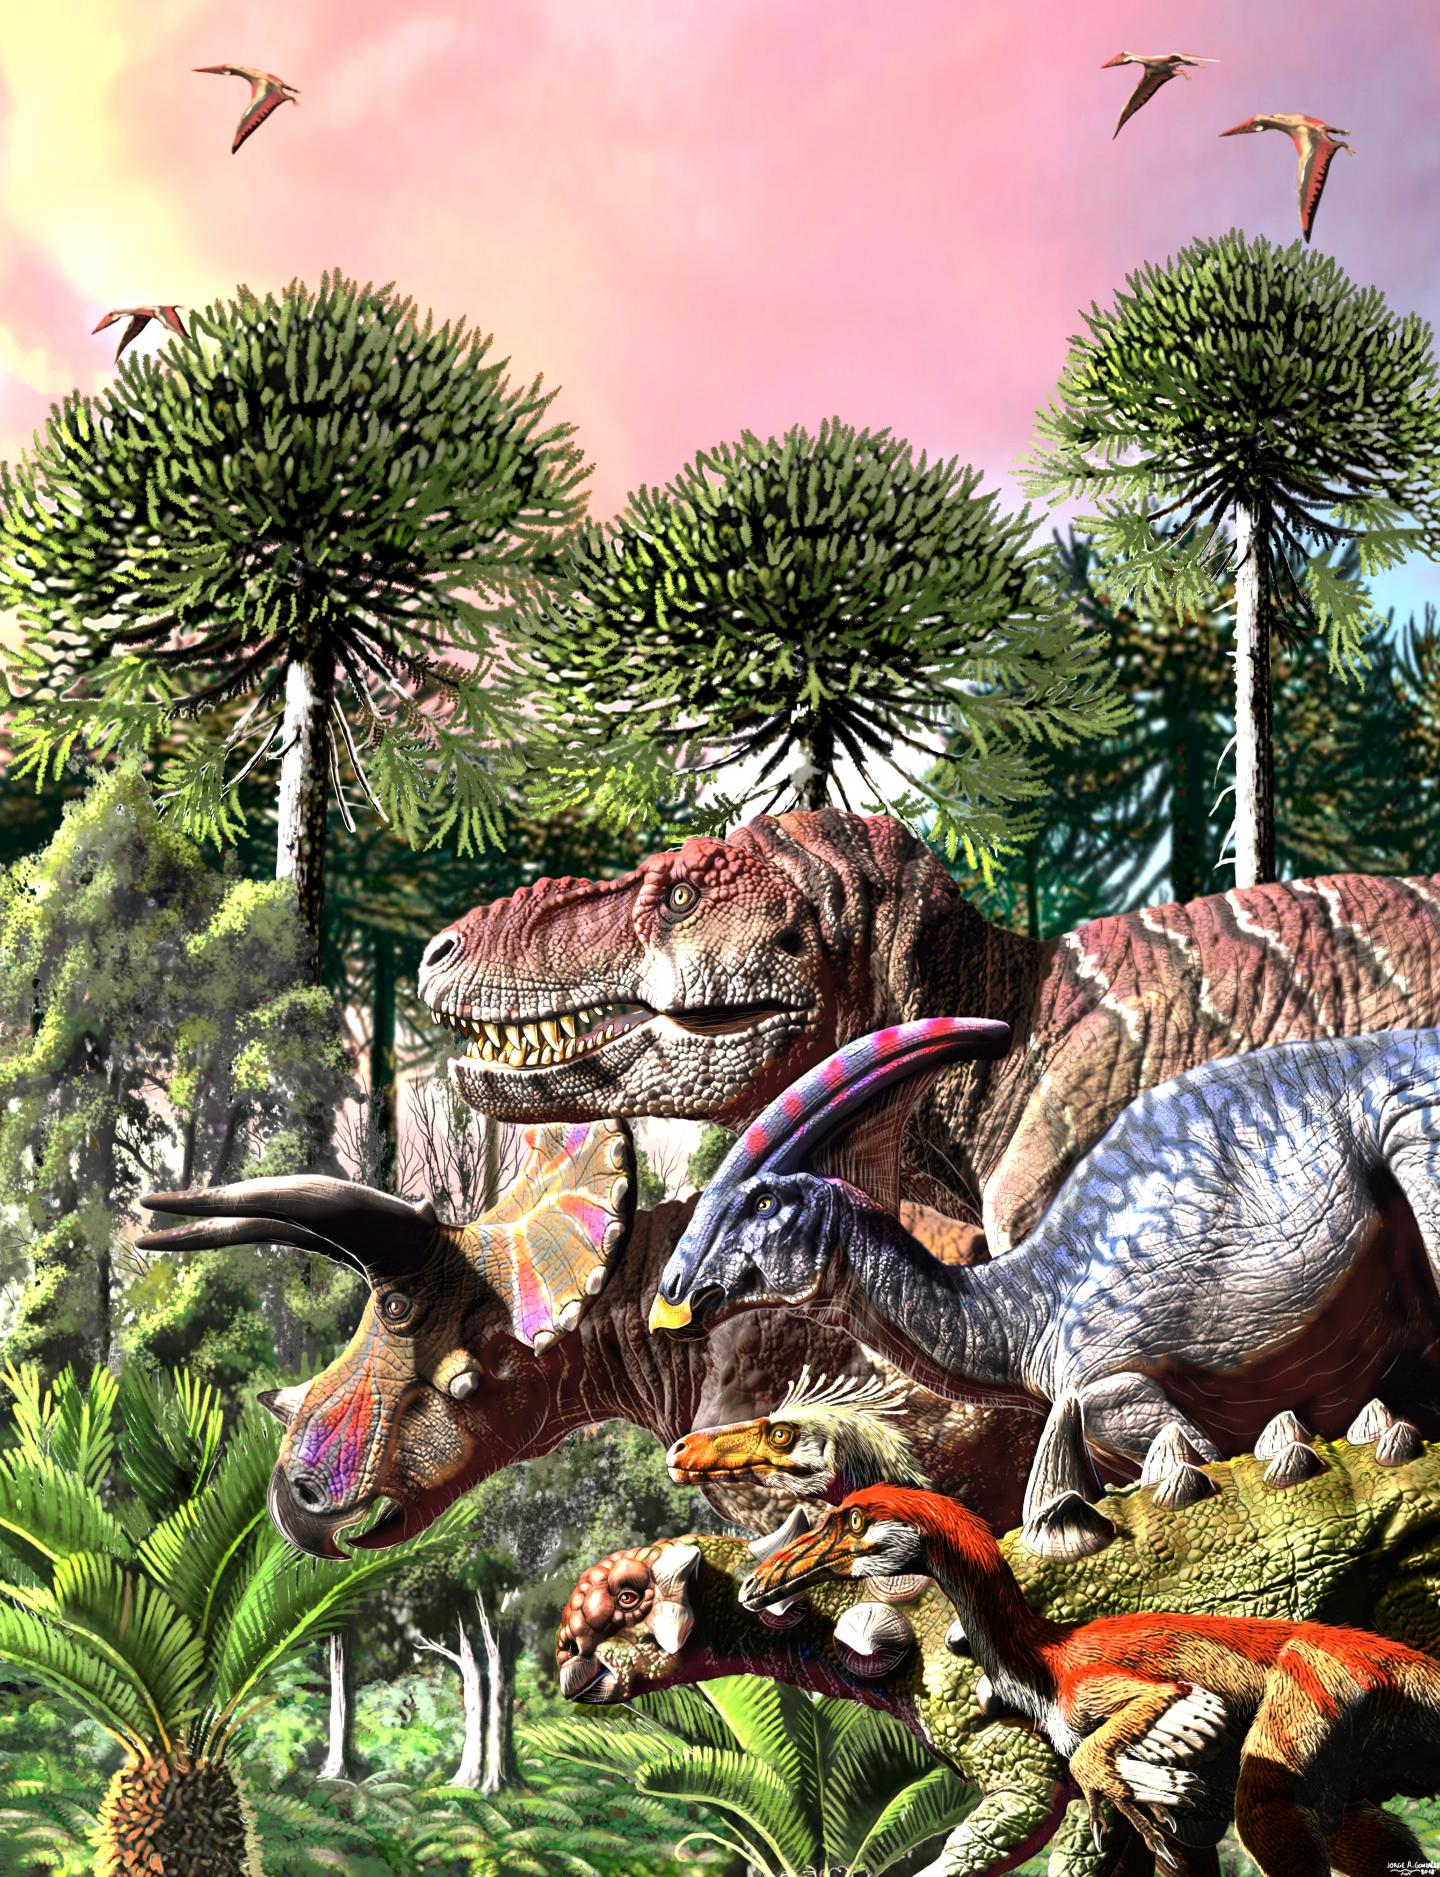 The Last March of Dinosaurs